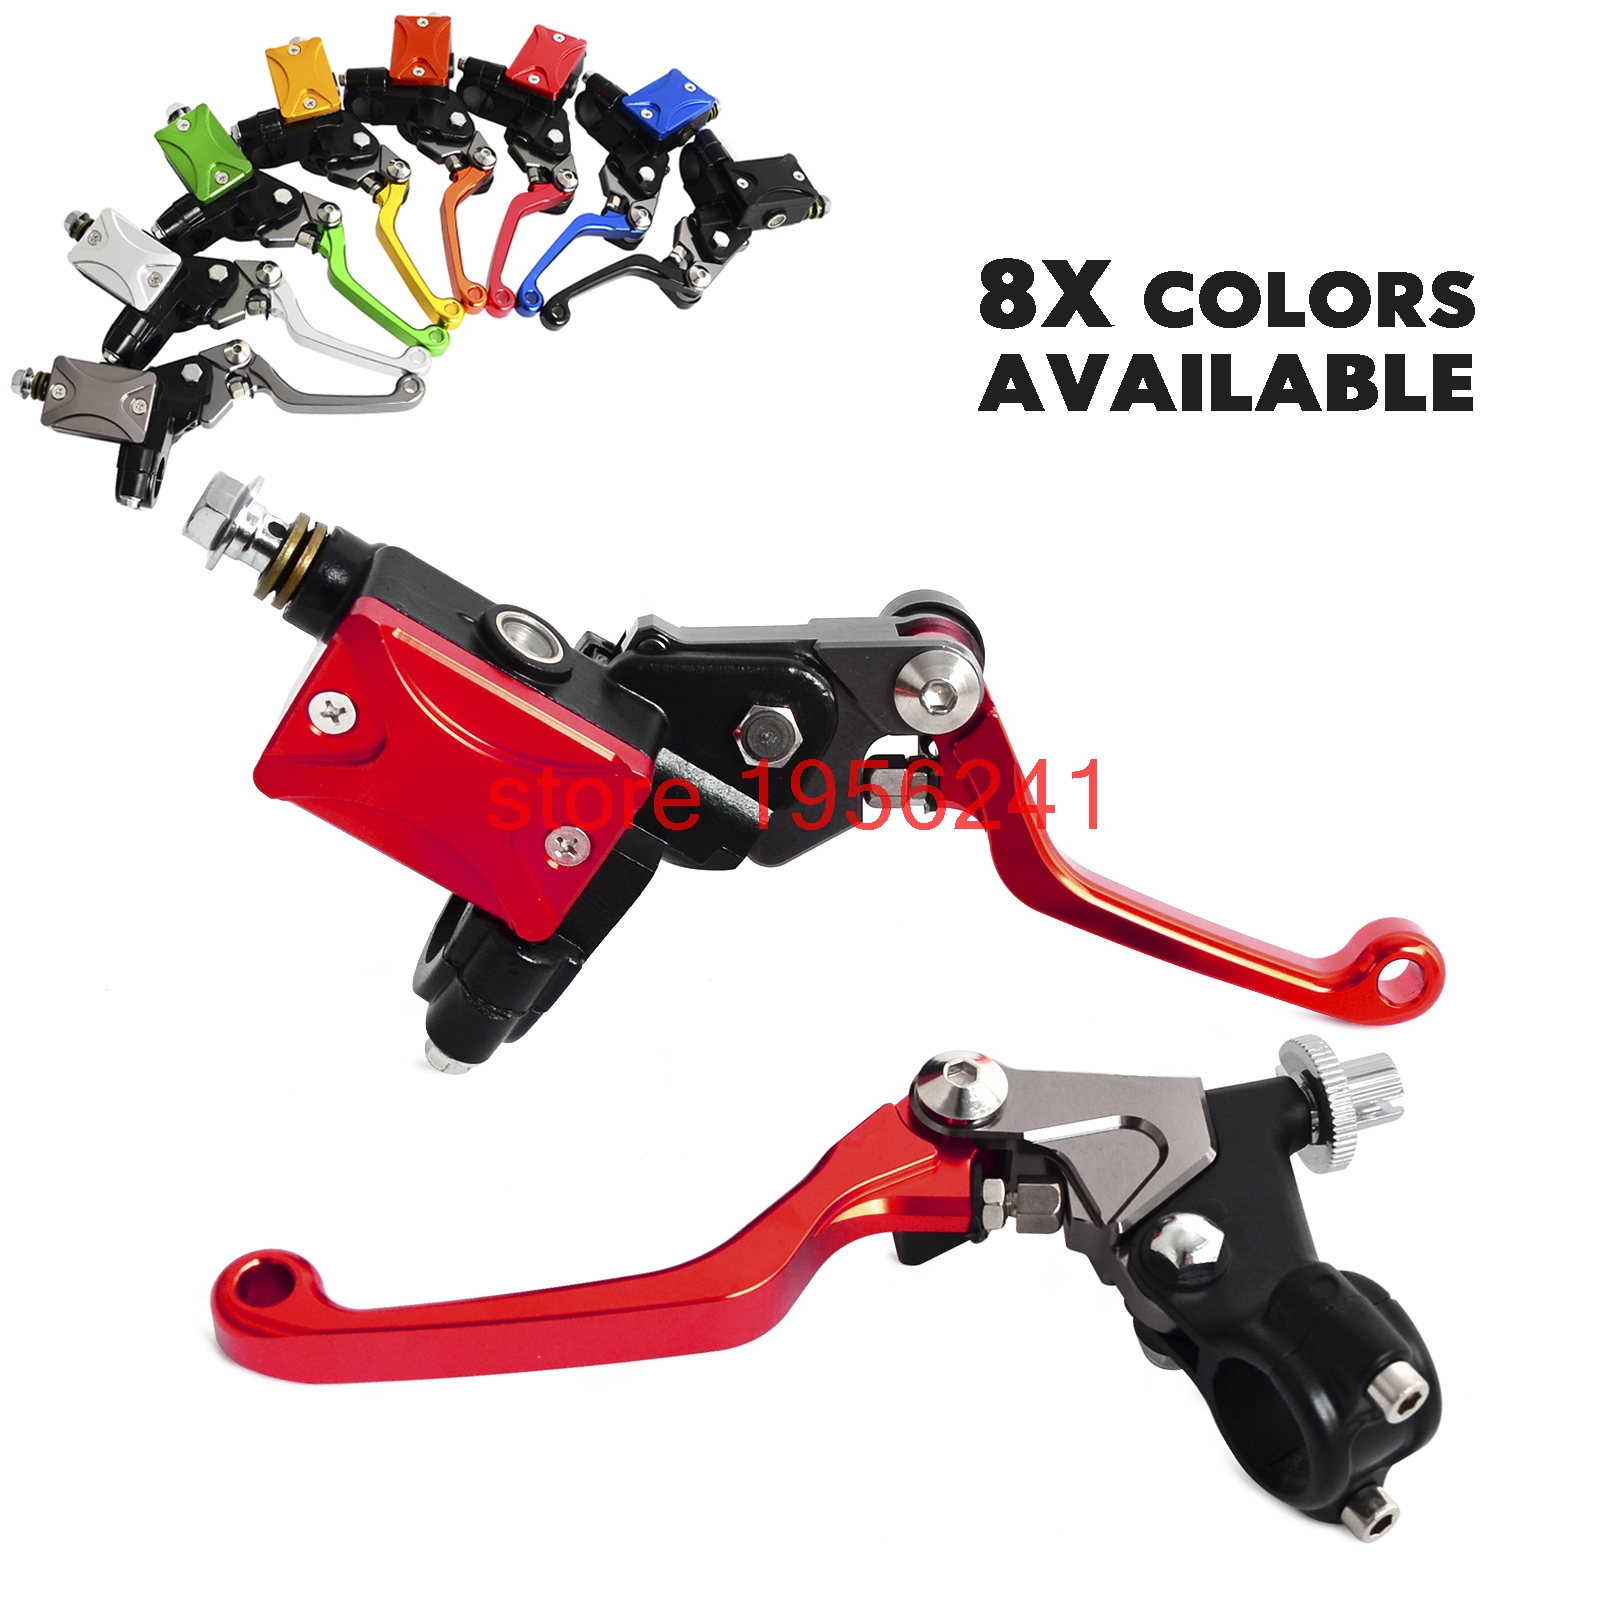 H2CNC Hydraulic Brake & Cable Clutch Lever Set Assembly For Kawasaki KX65 KX85 KX125 KX250 KX250F KX450F KLX250 KLX450R redmond masterfry fm4520 черный